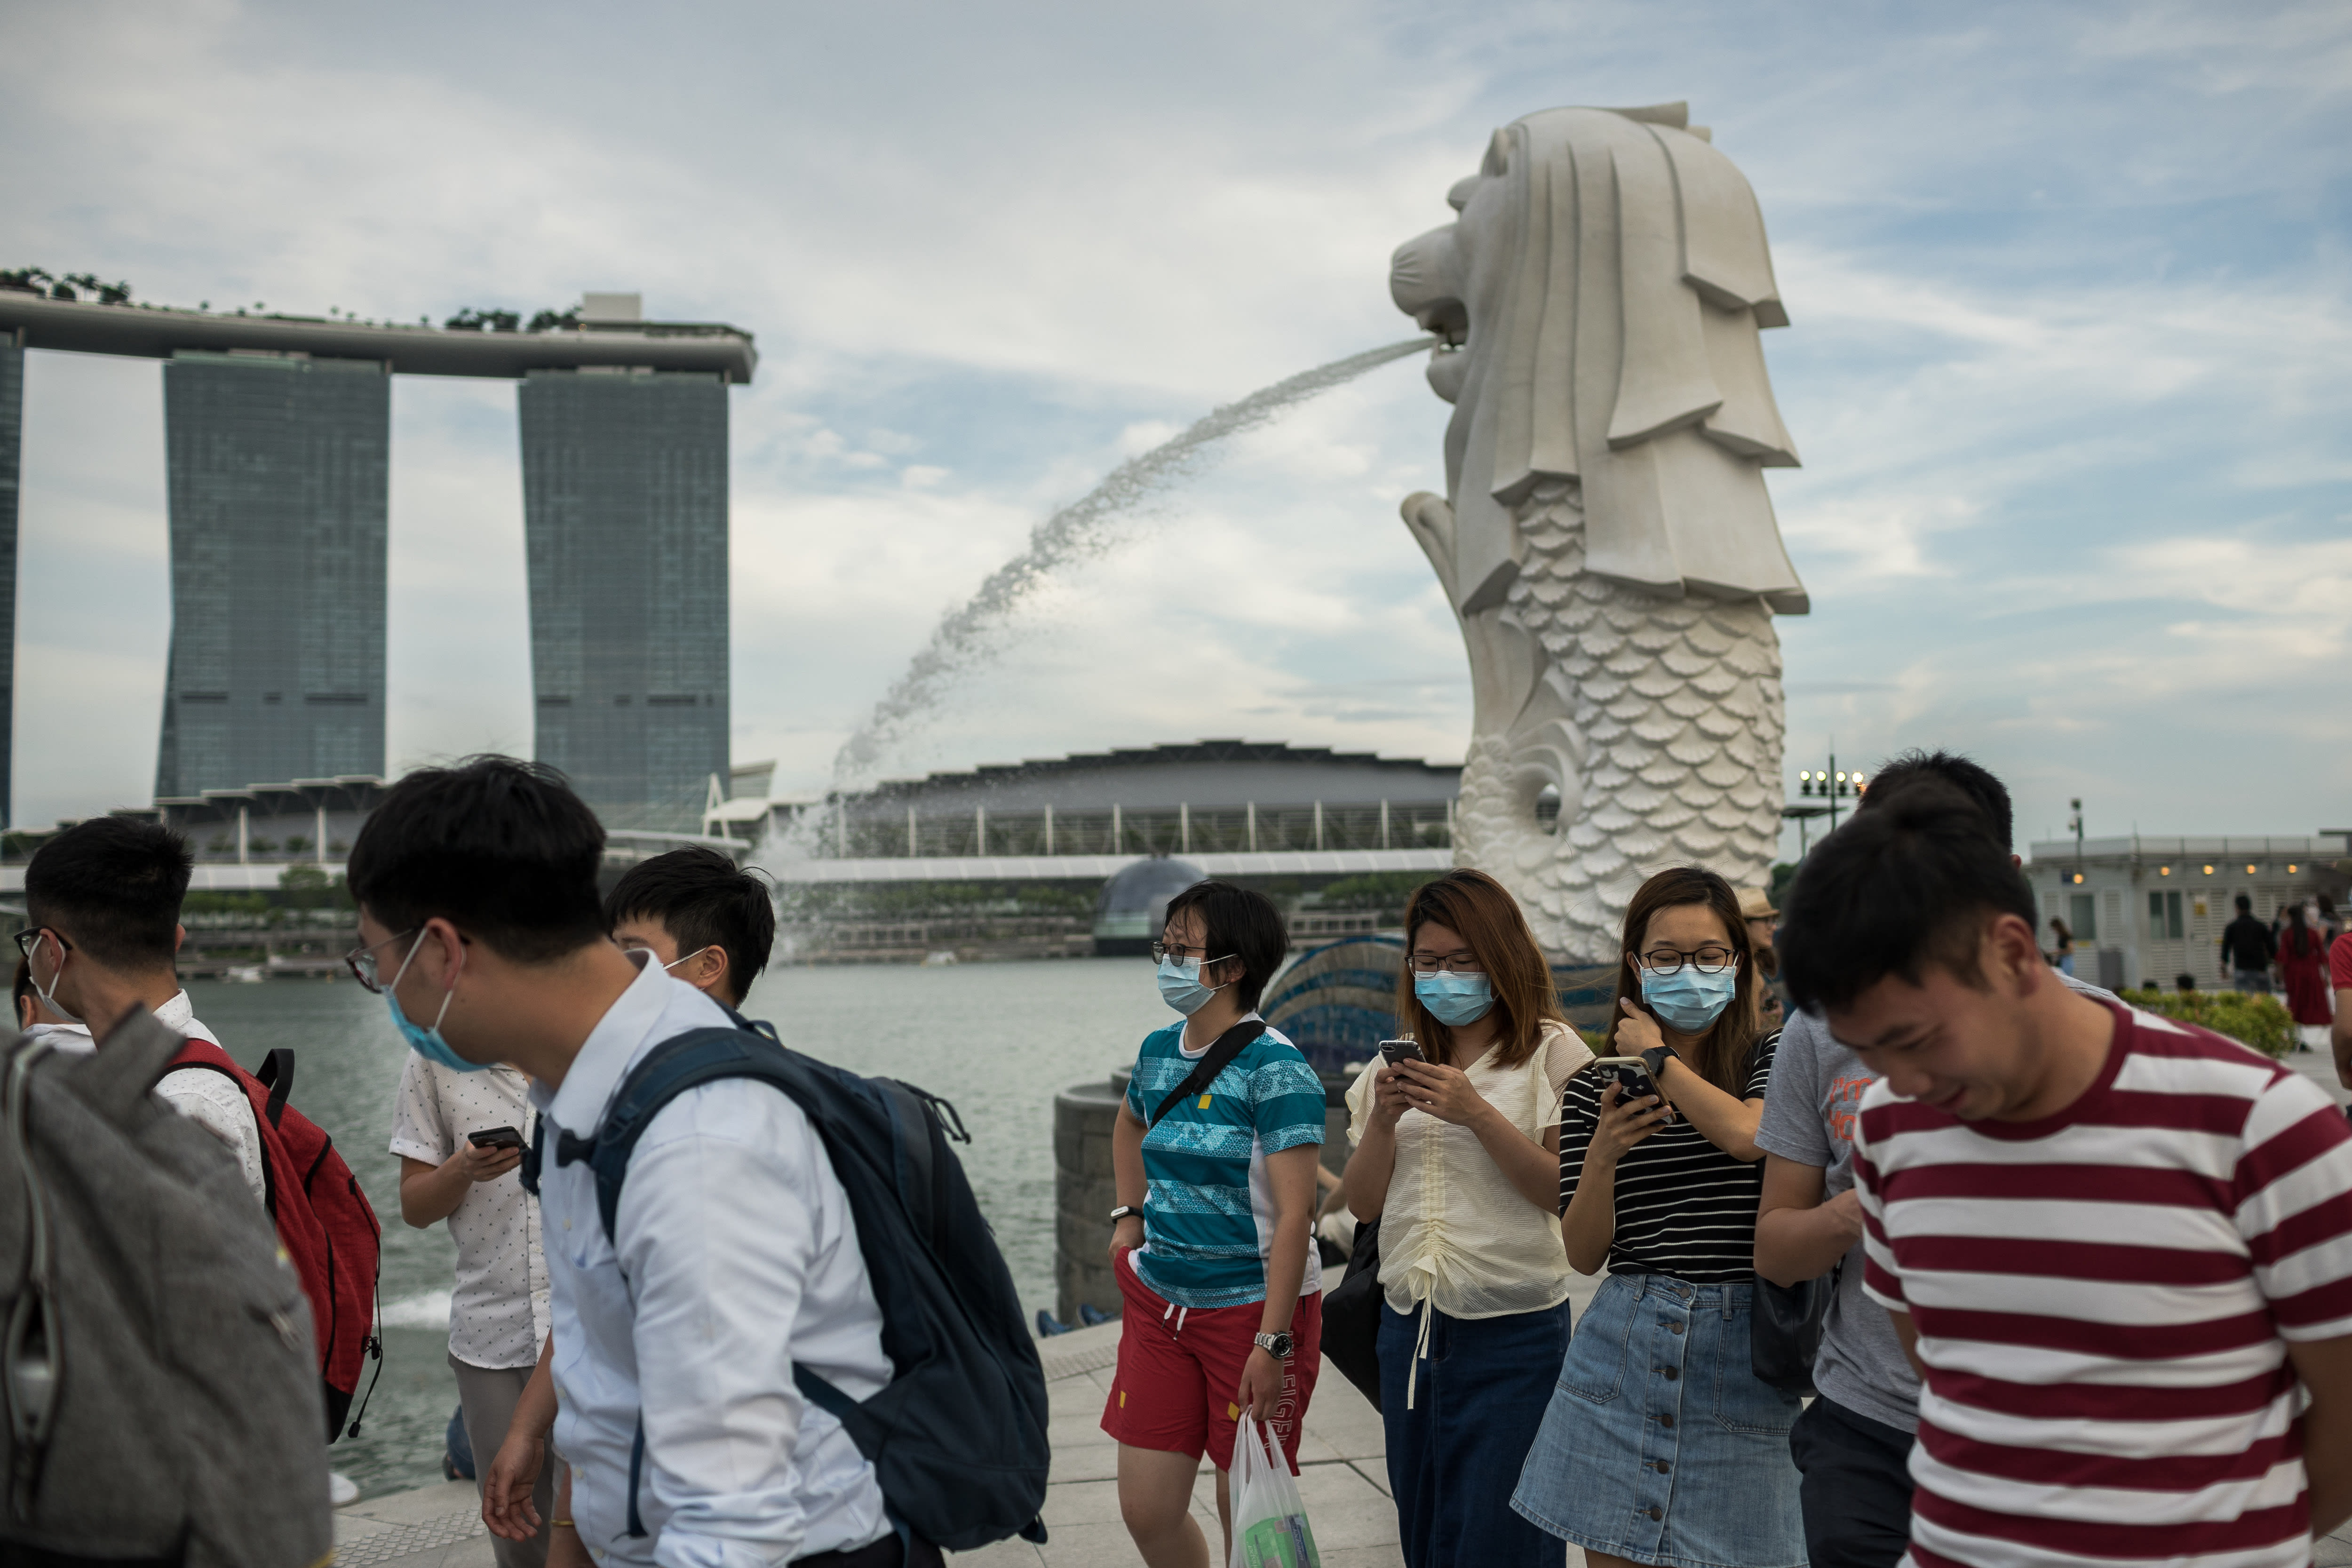 Singapore expects its economy to shrink in 2020 due to the coronavirus pandemic